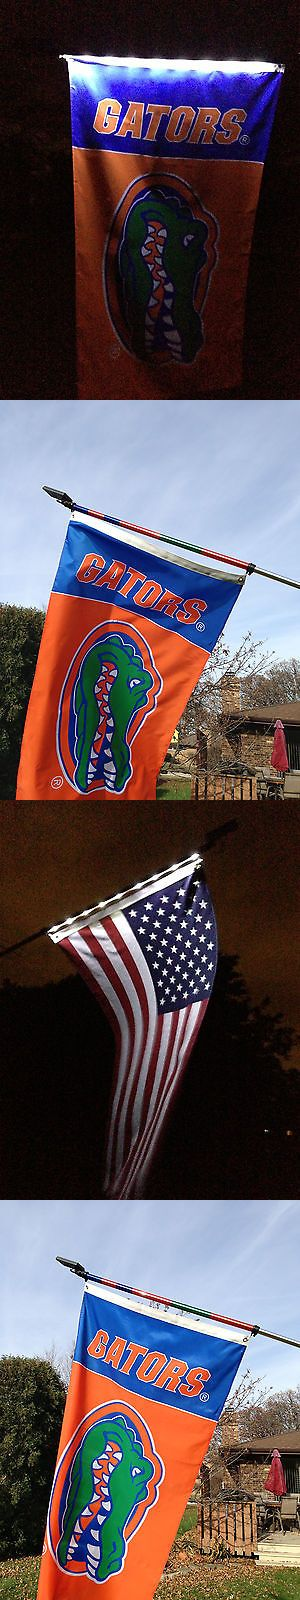 Jerseys 60597: University Of Florida Flag With A Solar Powered Flagpole ( Includes U.S. Flag ) -> BUY IT NOW ONLY: $74.99 on eBay!